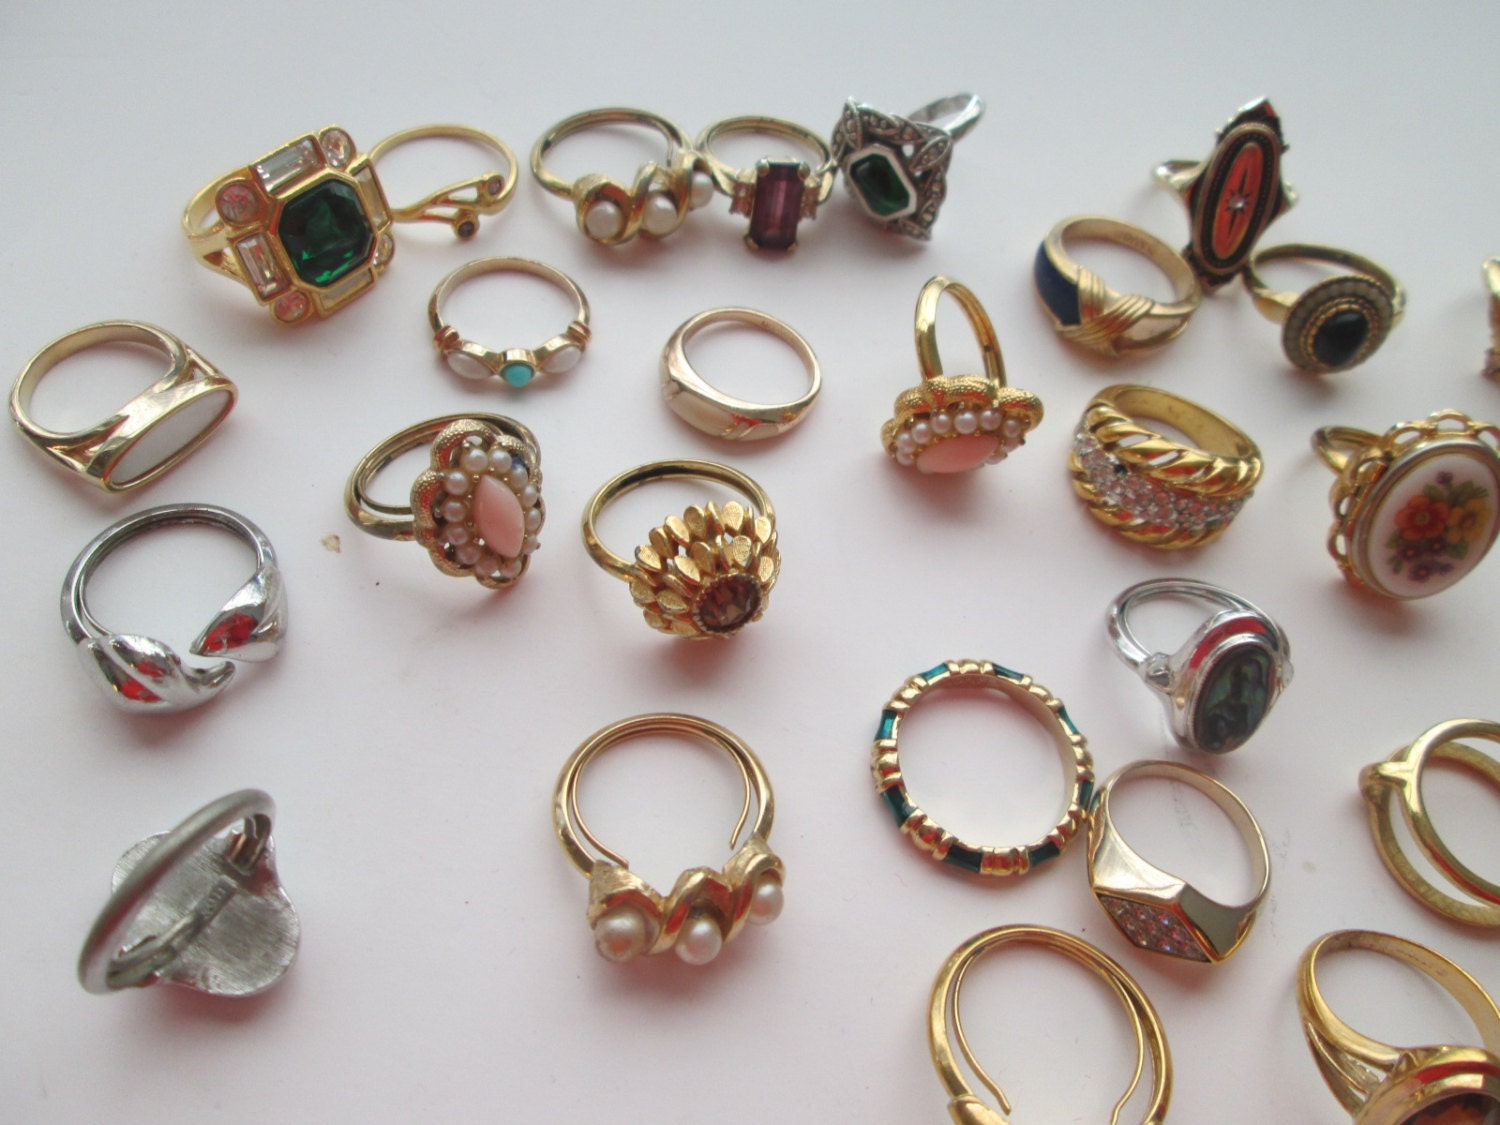 Large Lot Vintage Avon Jewelry Costume Rings Over 40 Pieces